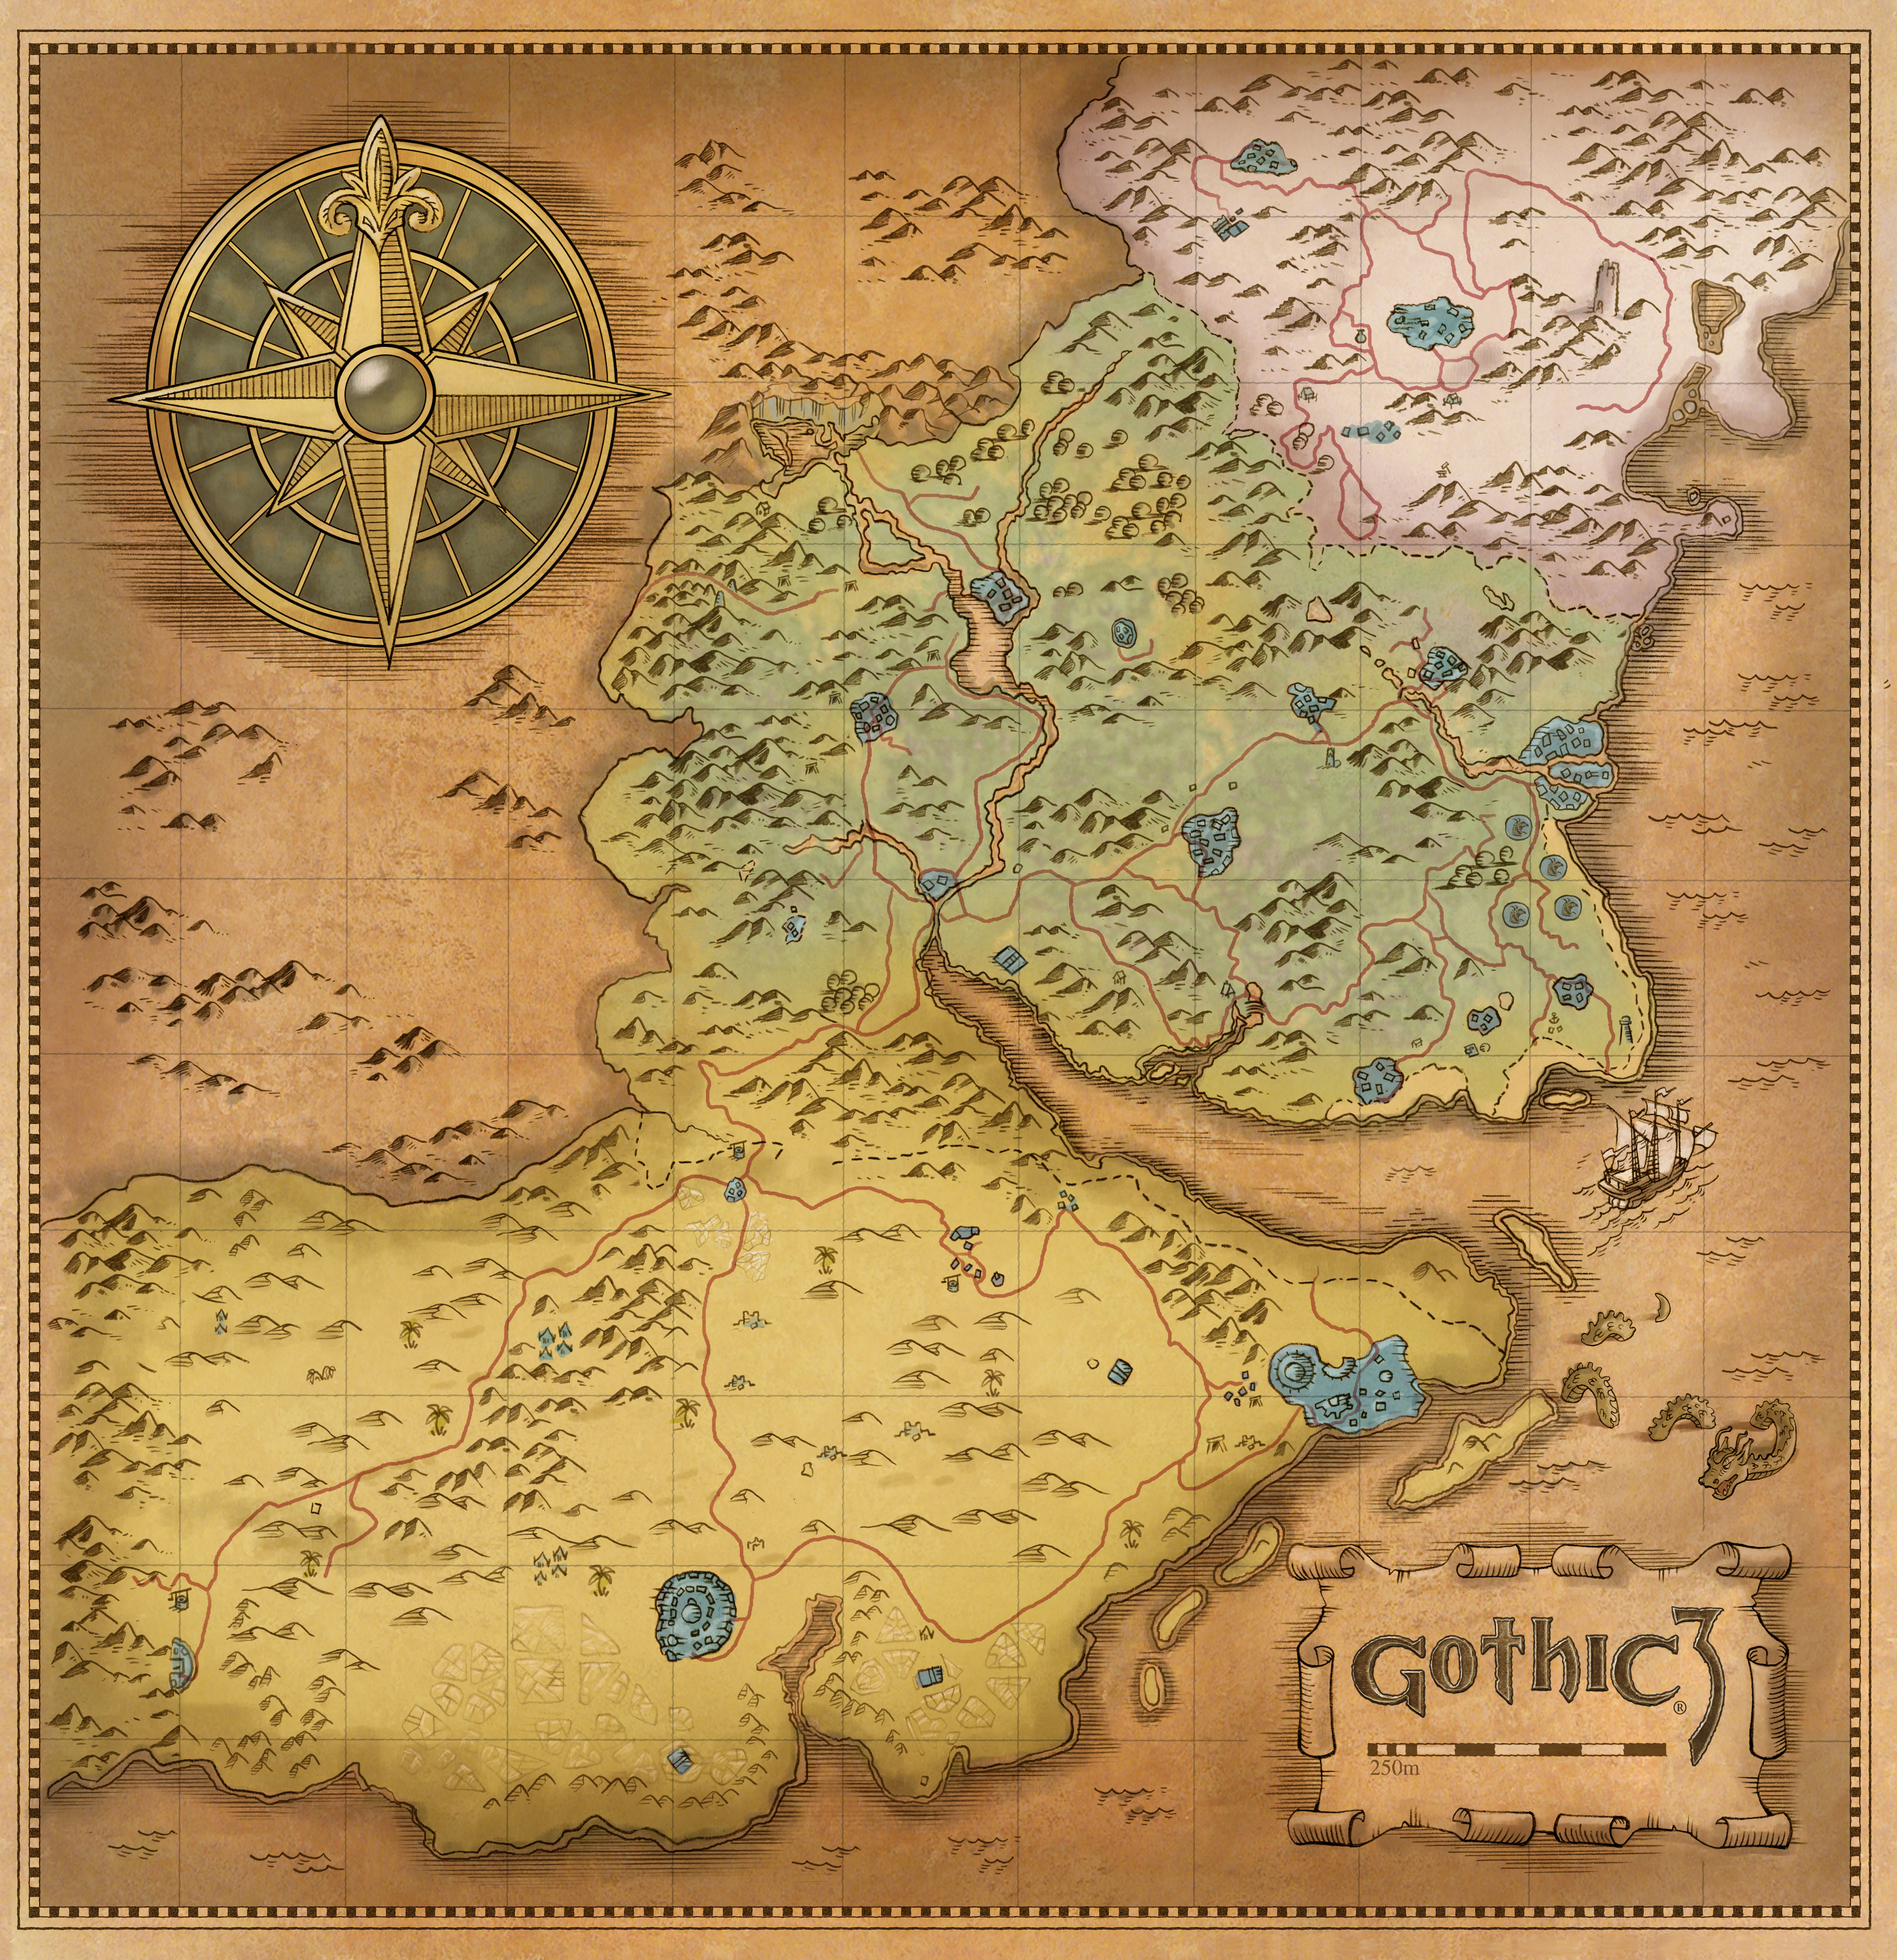 Gothic 3 Interactive Map